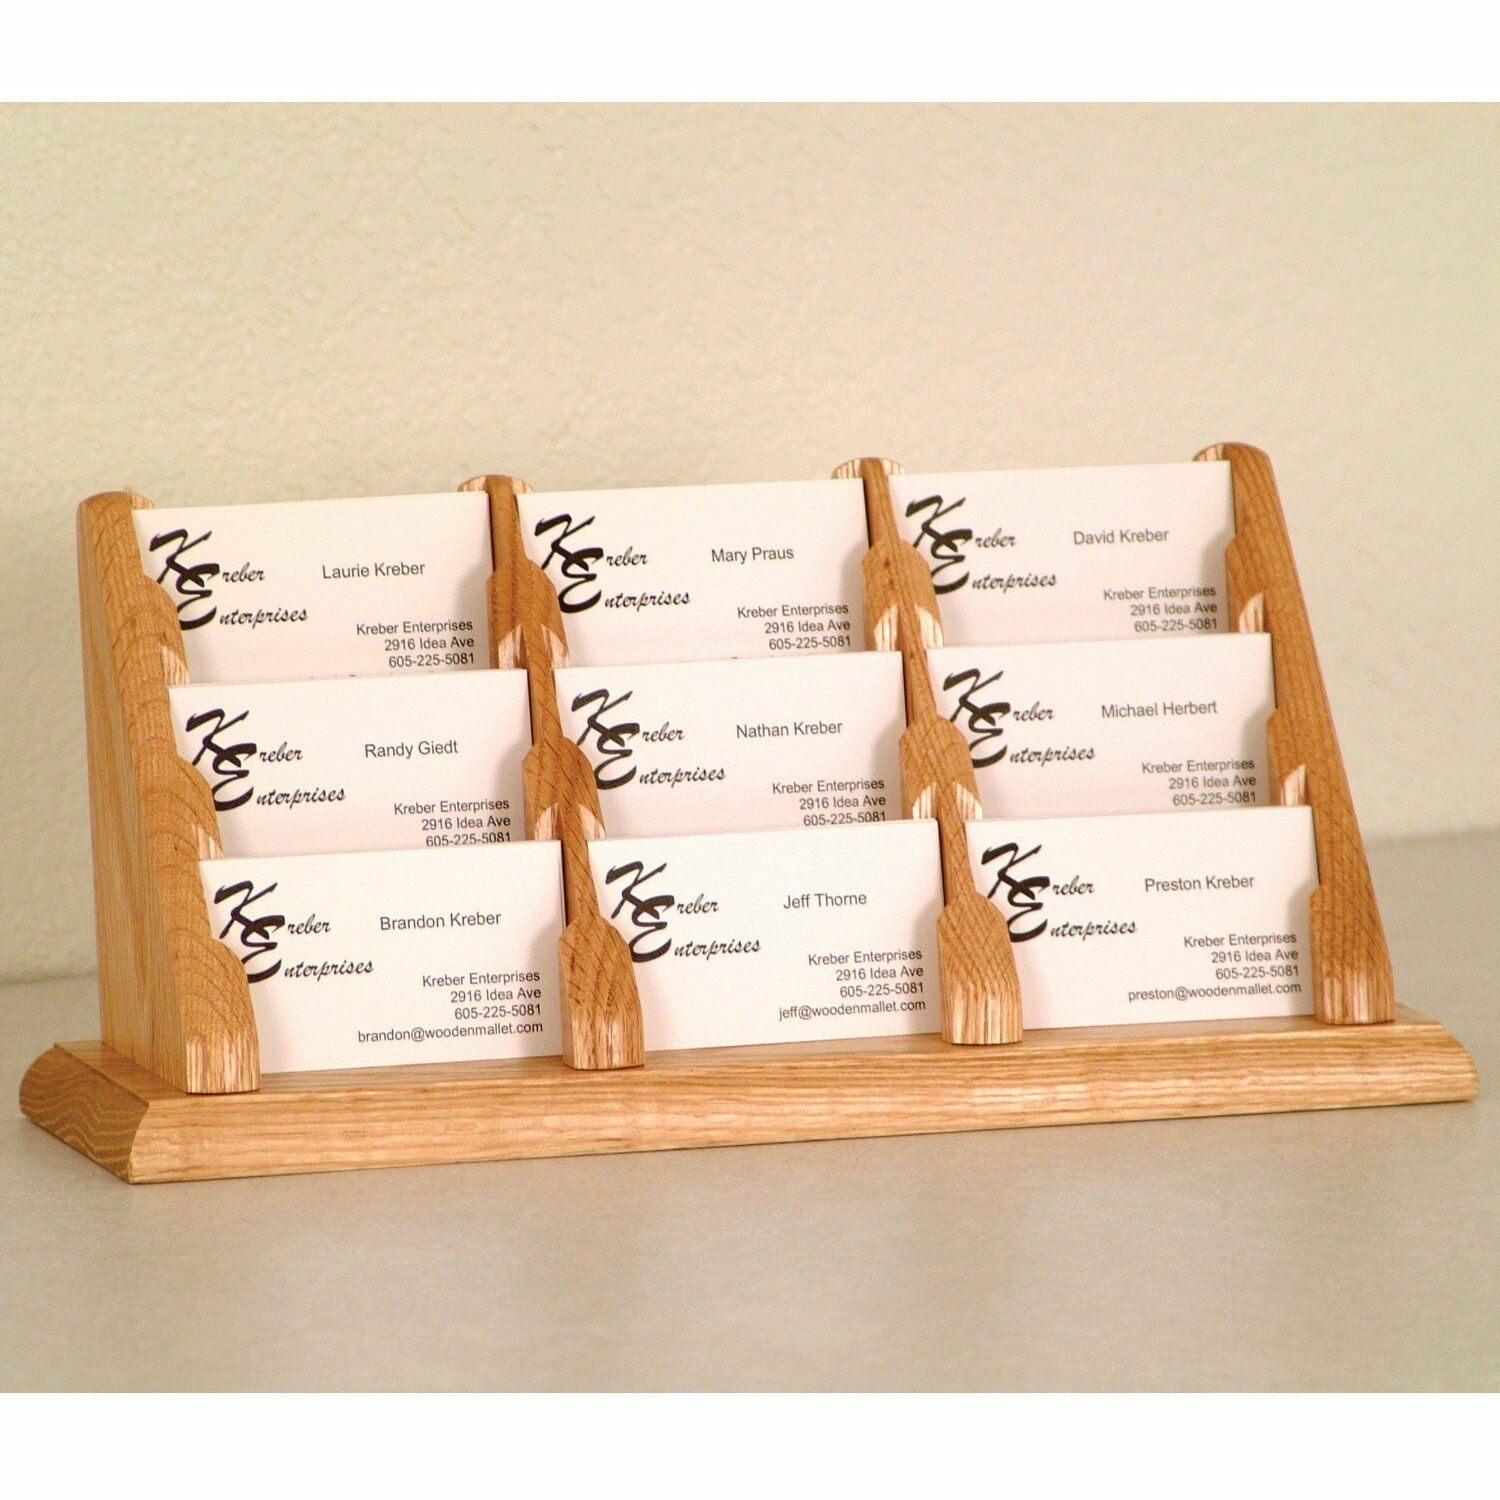 Wooden mallet bcc39lo light oak 9 pocket countertop business card picture 1 of 1 colourmoves